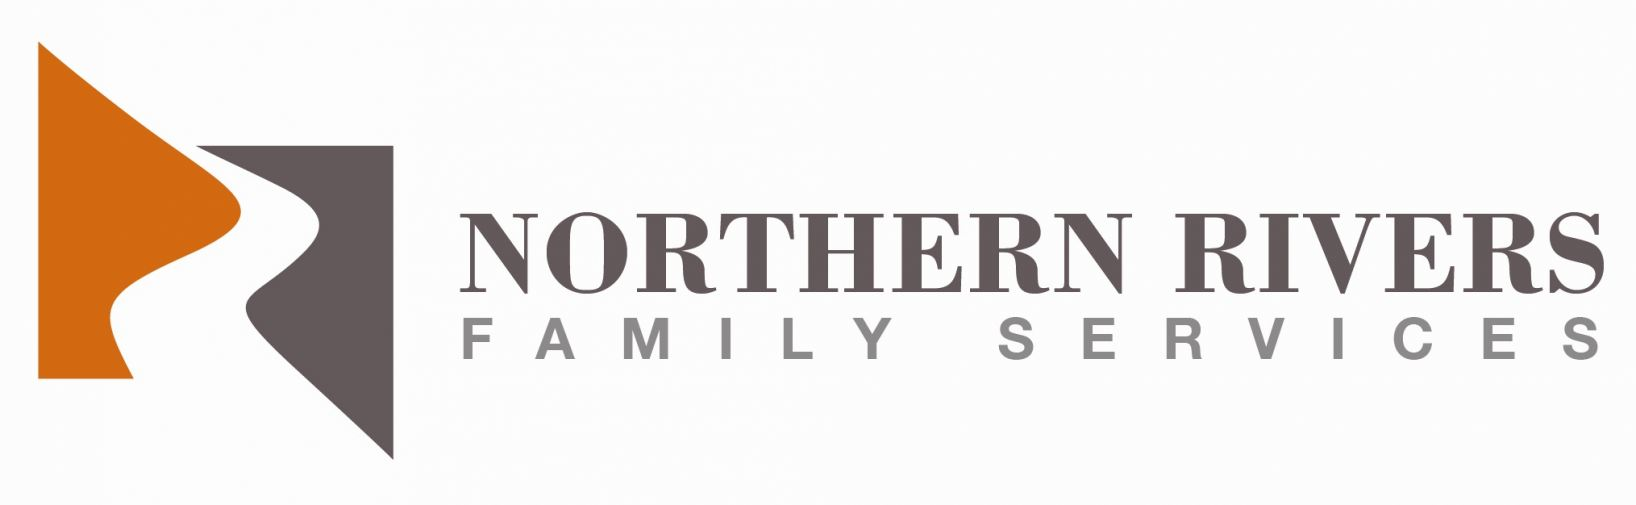 Northern Rivers Family Services Logo